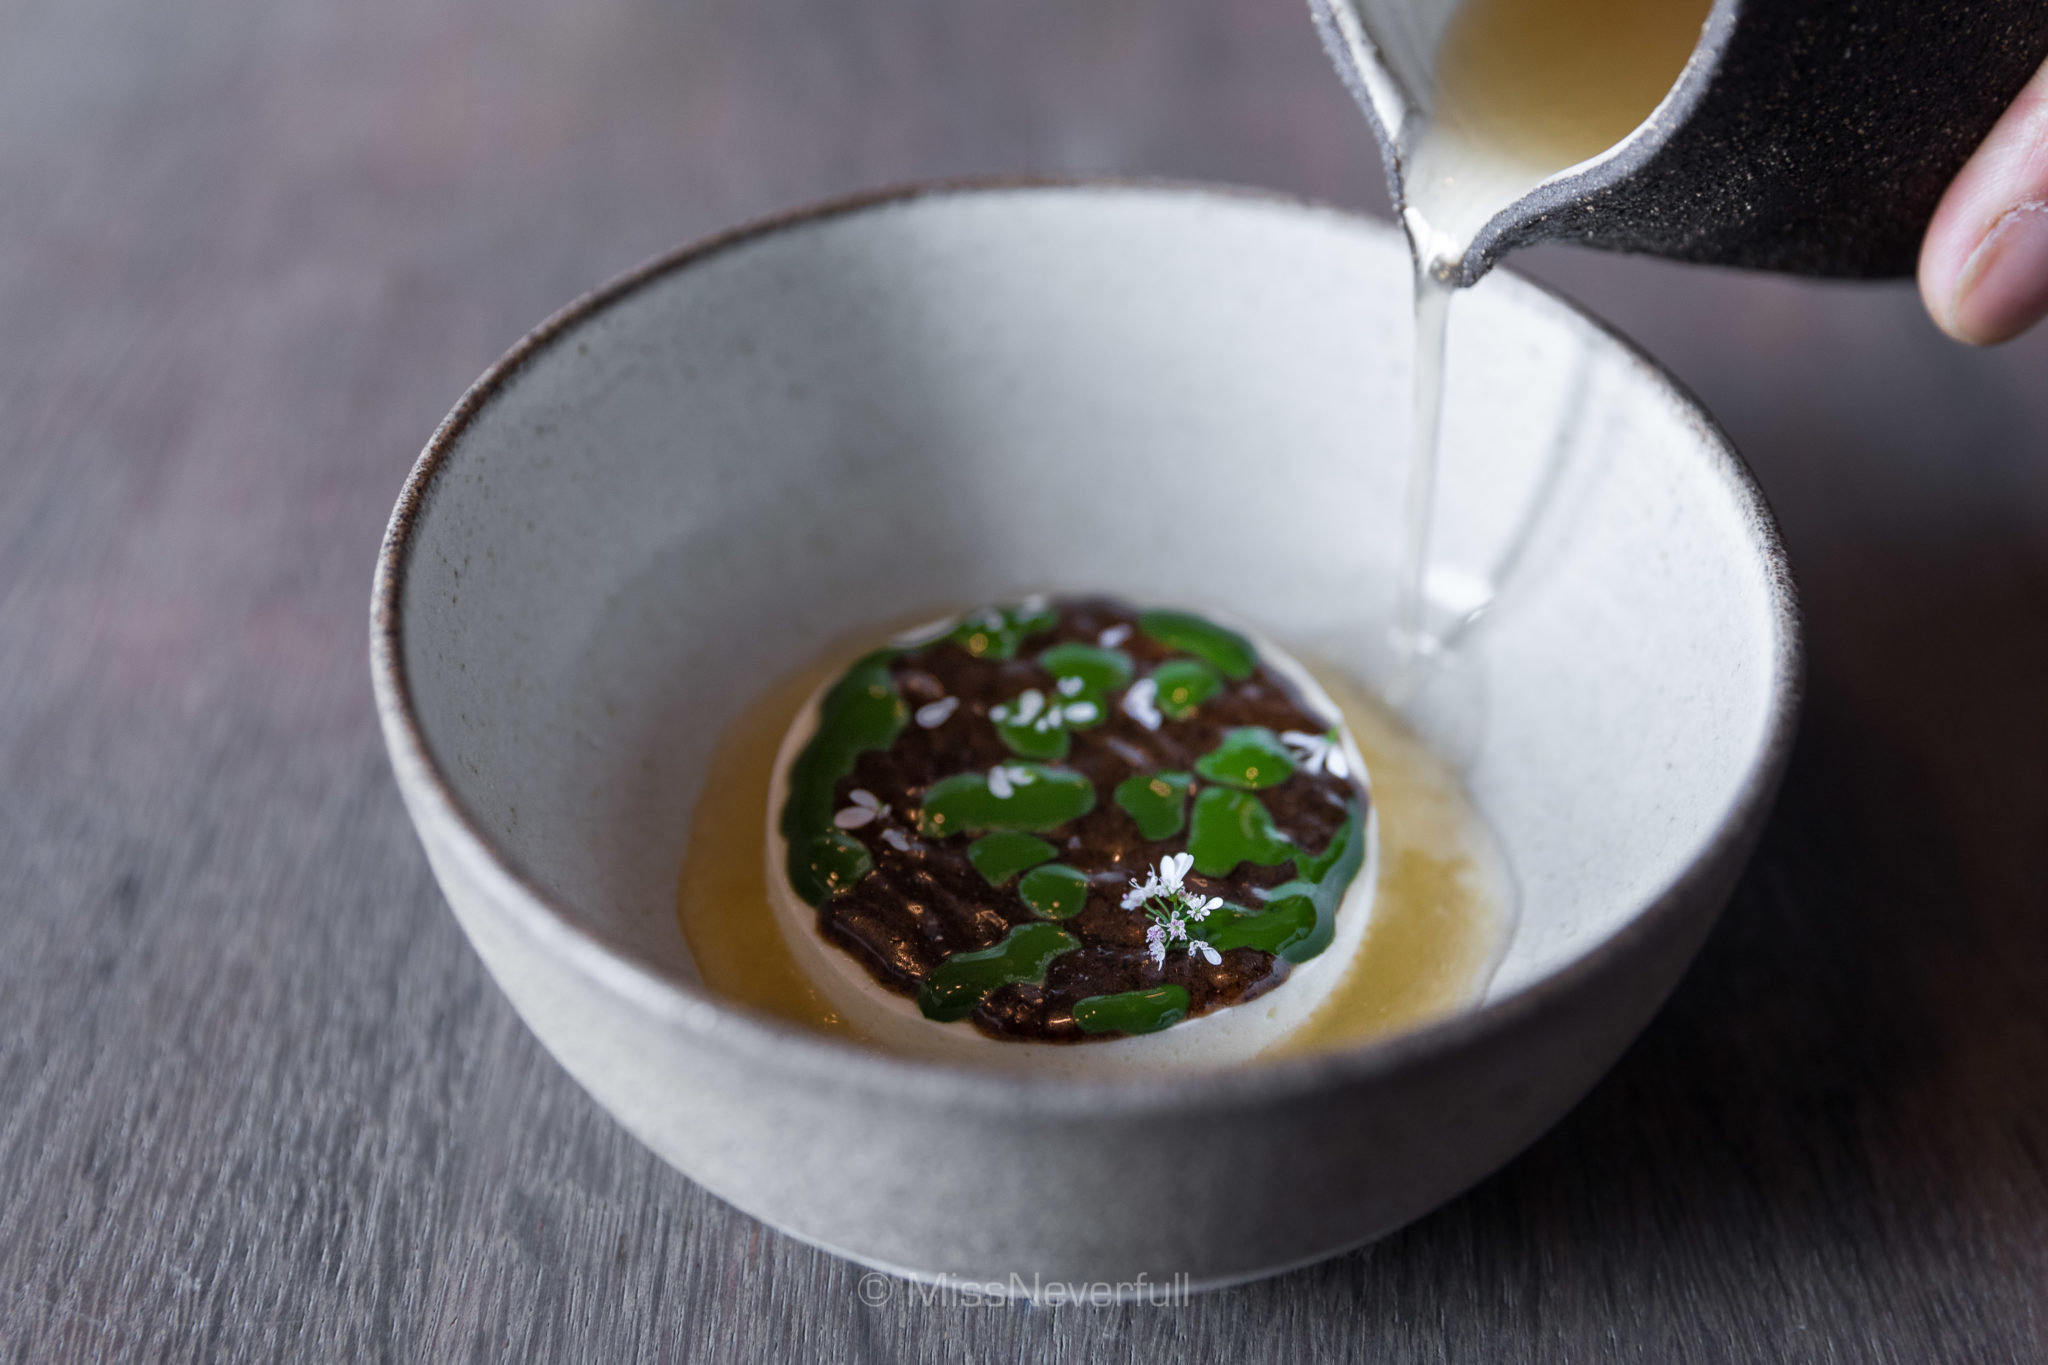 13. A dessert of sheep's milk and ant paste